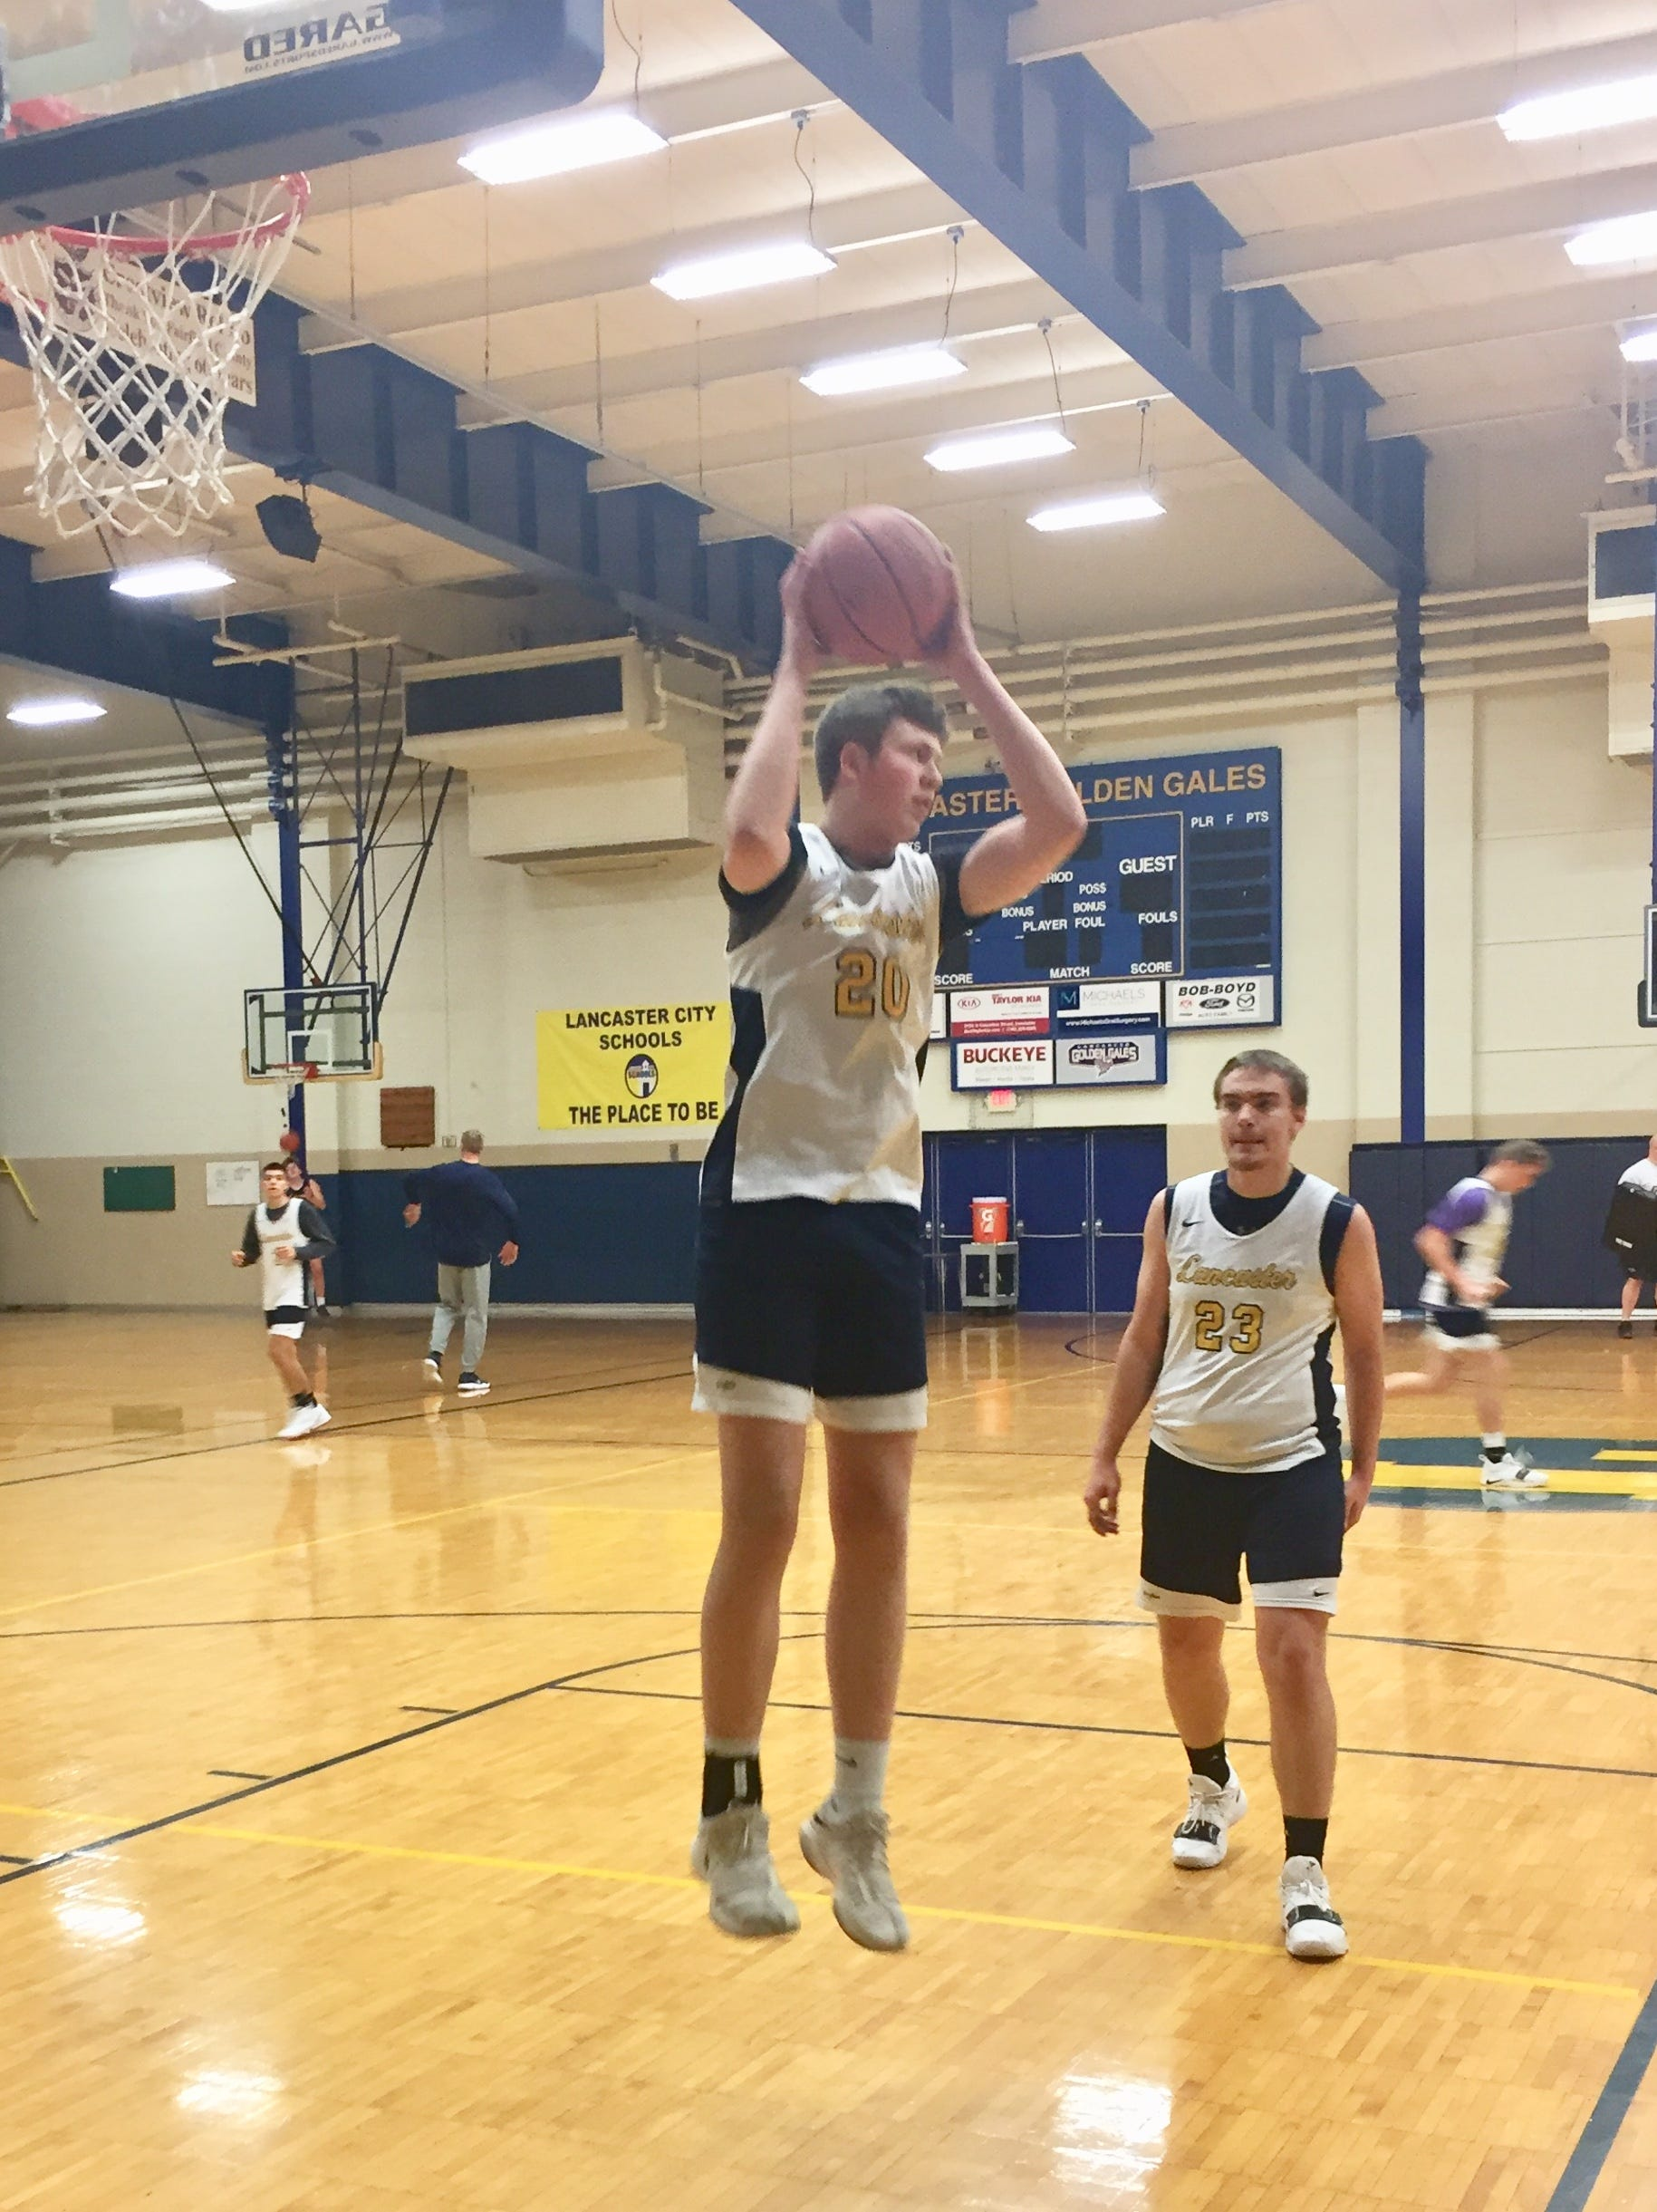 Lancaster senior Carson Thomas grabs a rebound in a drill during practice. The Gales will open the season Friday at Teays Valley.